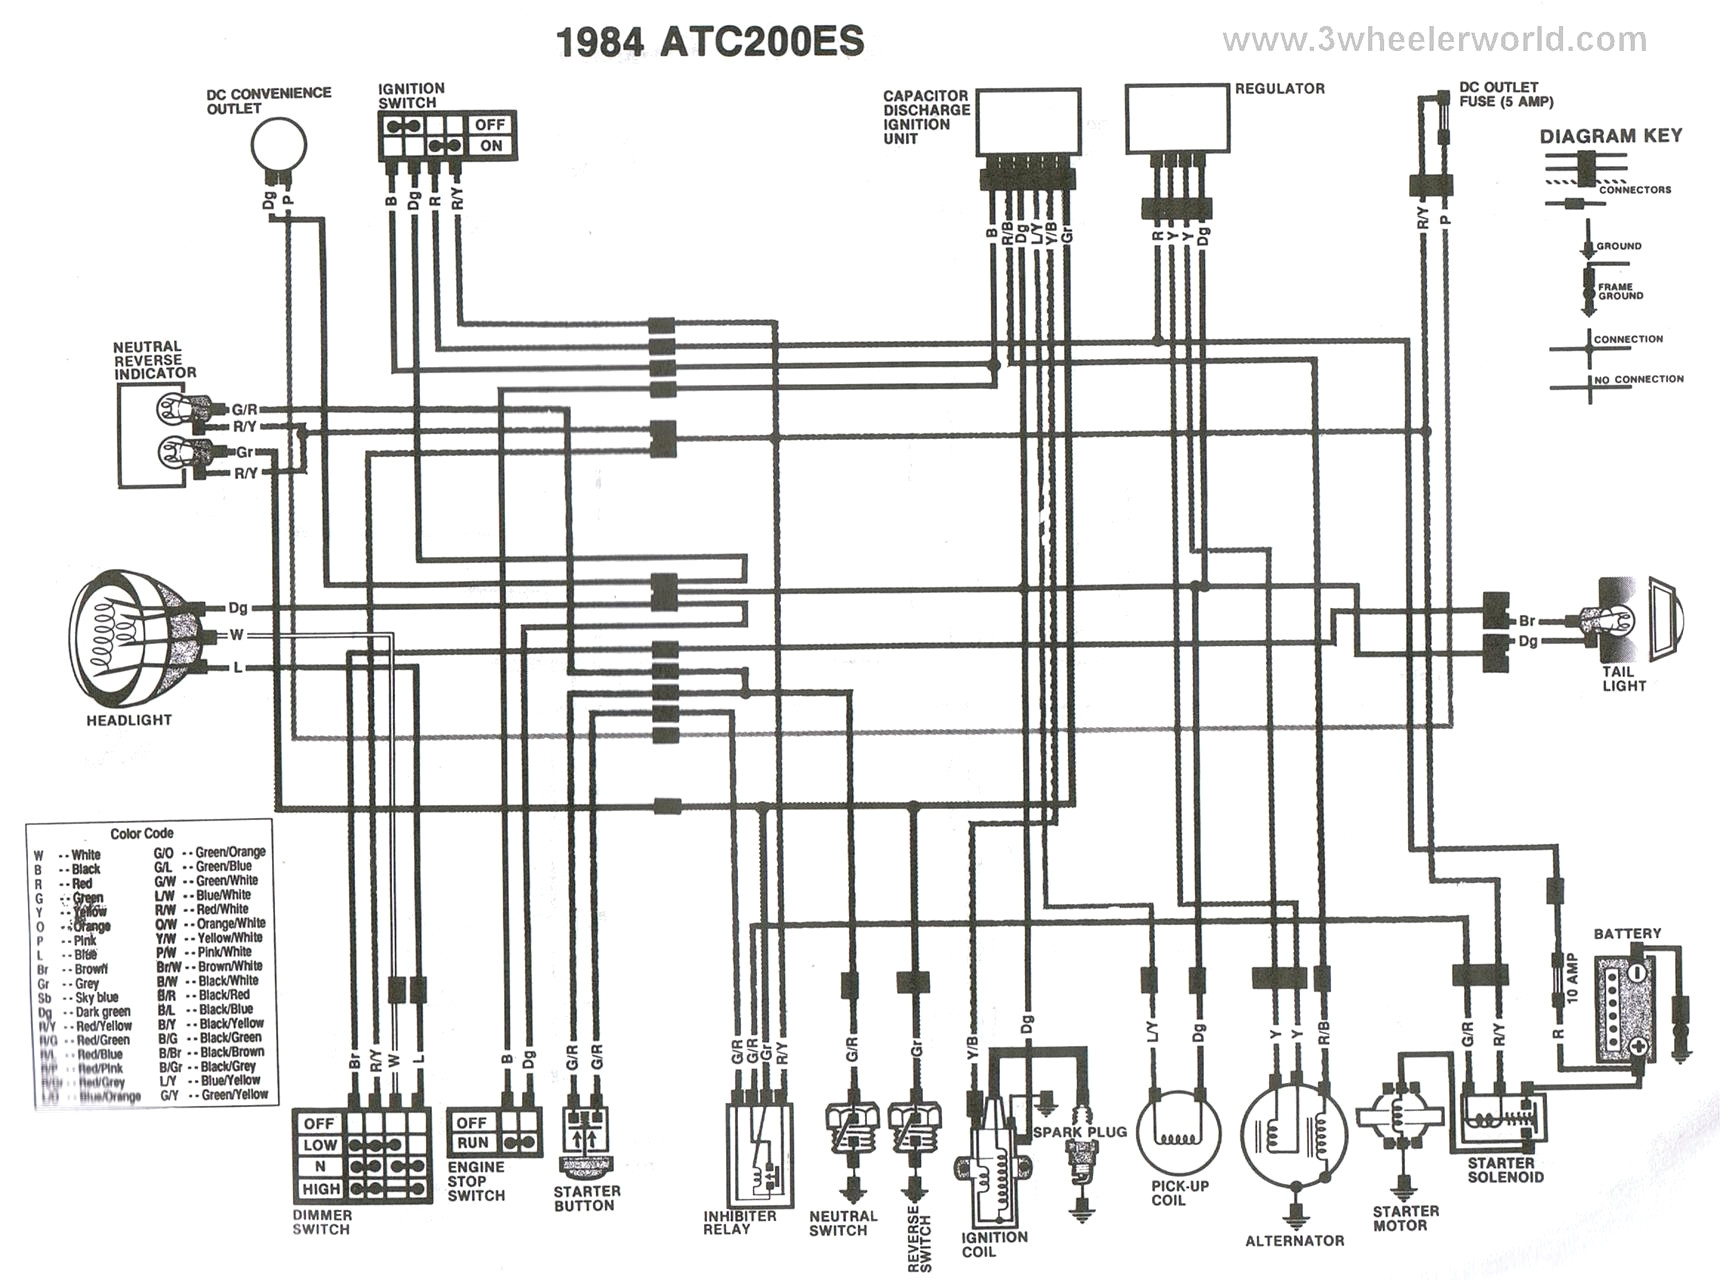 DIAGRAM] Honda Fourtrax 300 Wiring Diagram FULL Version HD Quality Wiring  Diagram - WIRINGPHOENIXB.DSIMOLA.ITDsimola.it